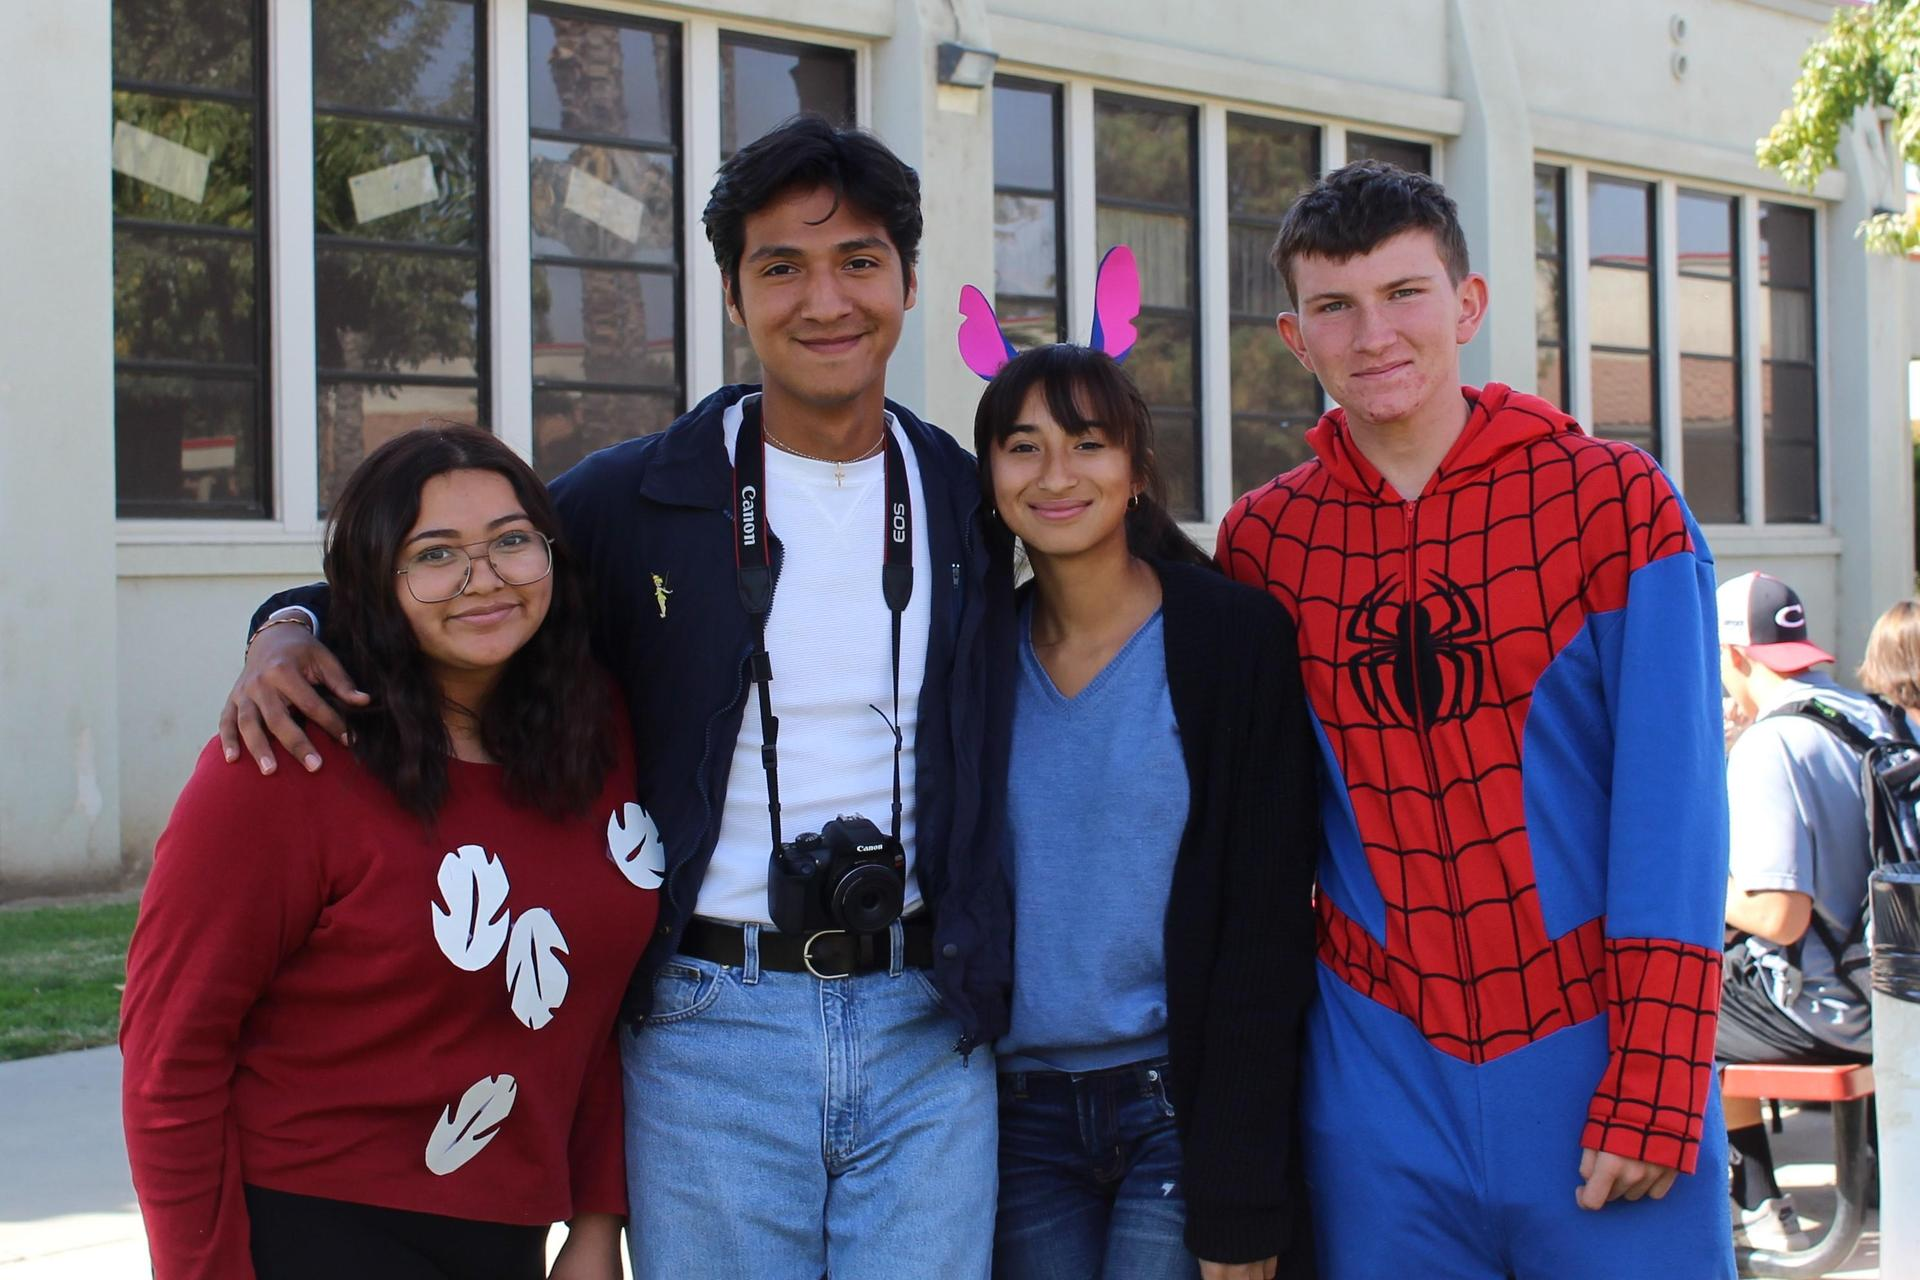 Naomi Hernandez as Lilo, Luis Guevara, Sabrina Davila as Stitch, Evan Sotelo as Spiderman